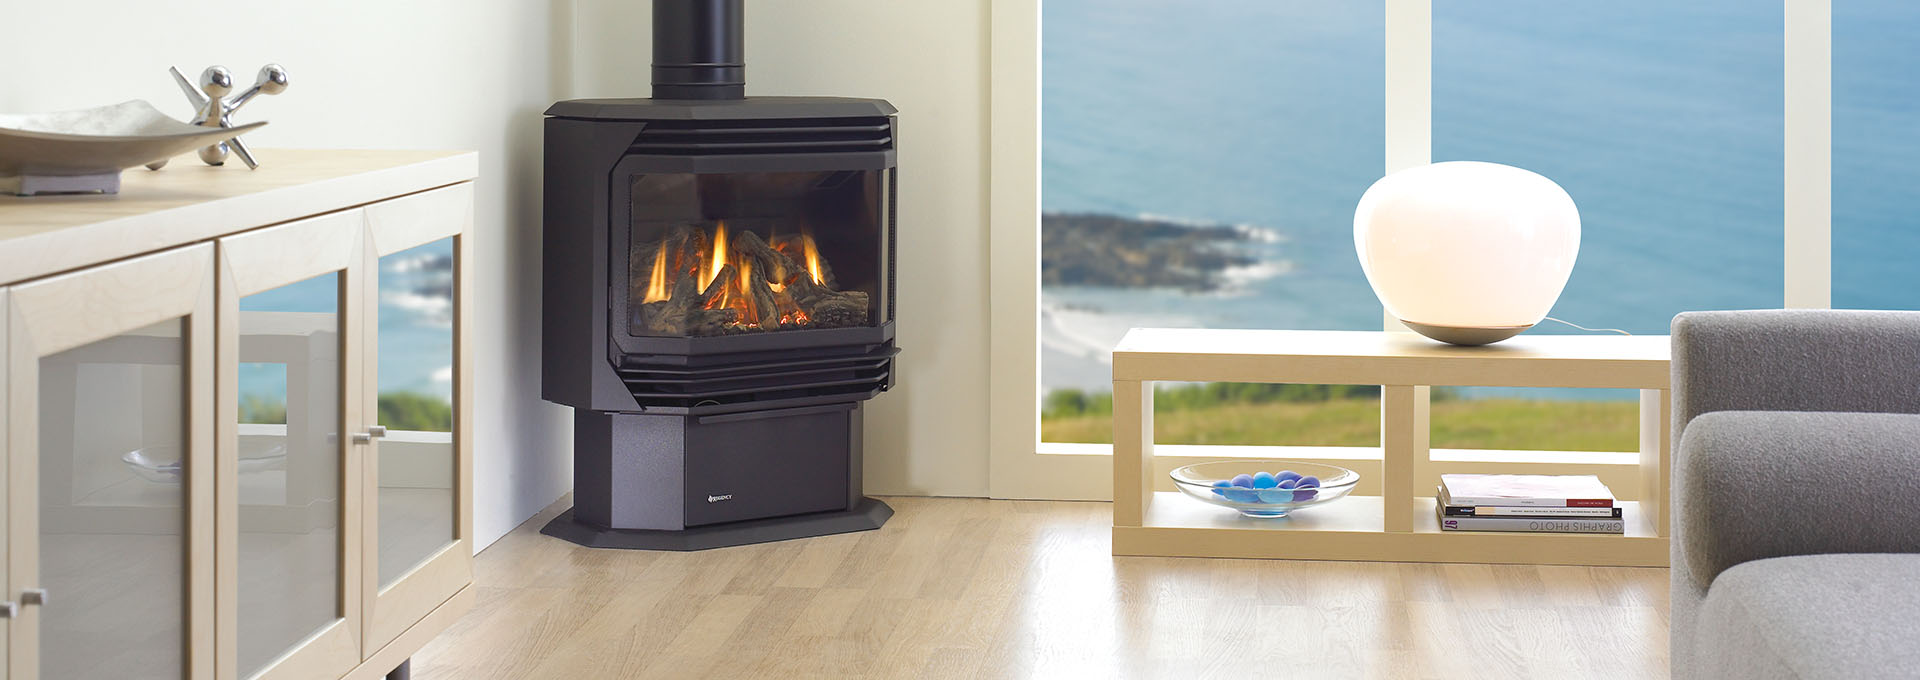 gas stoves regency fireplace products rh regency fire com Small Gas Stoves and Fireplaces Direct Vent Natural Gas Stove